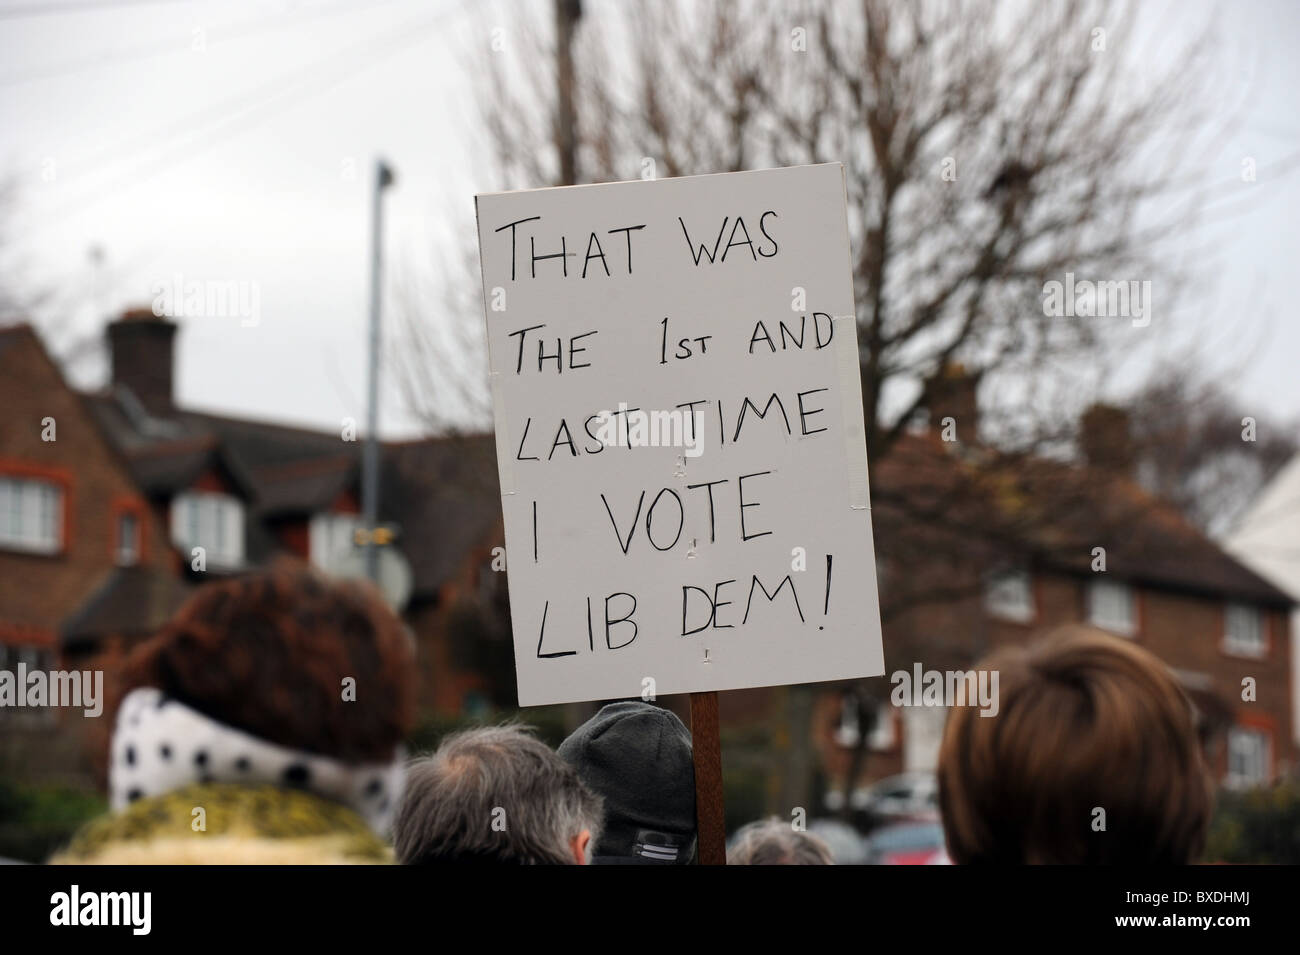 Anti Lib Dem placard during on display during a protest march about the government's cuts to higher education - Stock Image